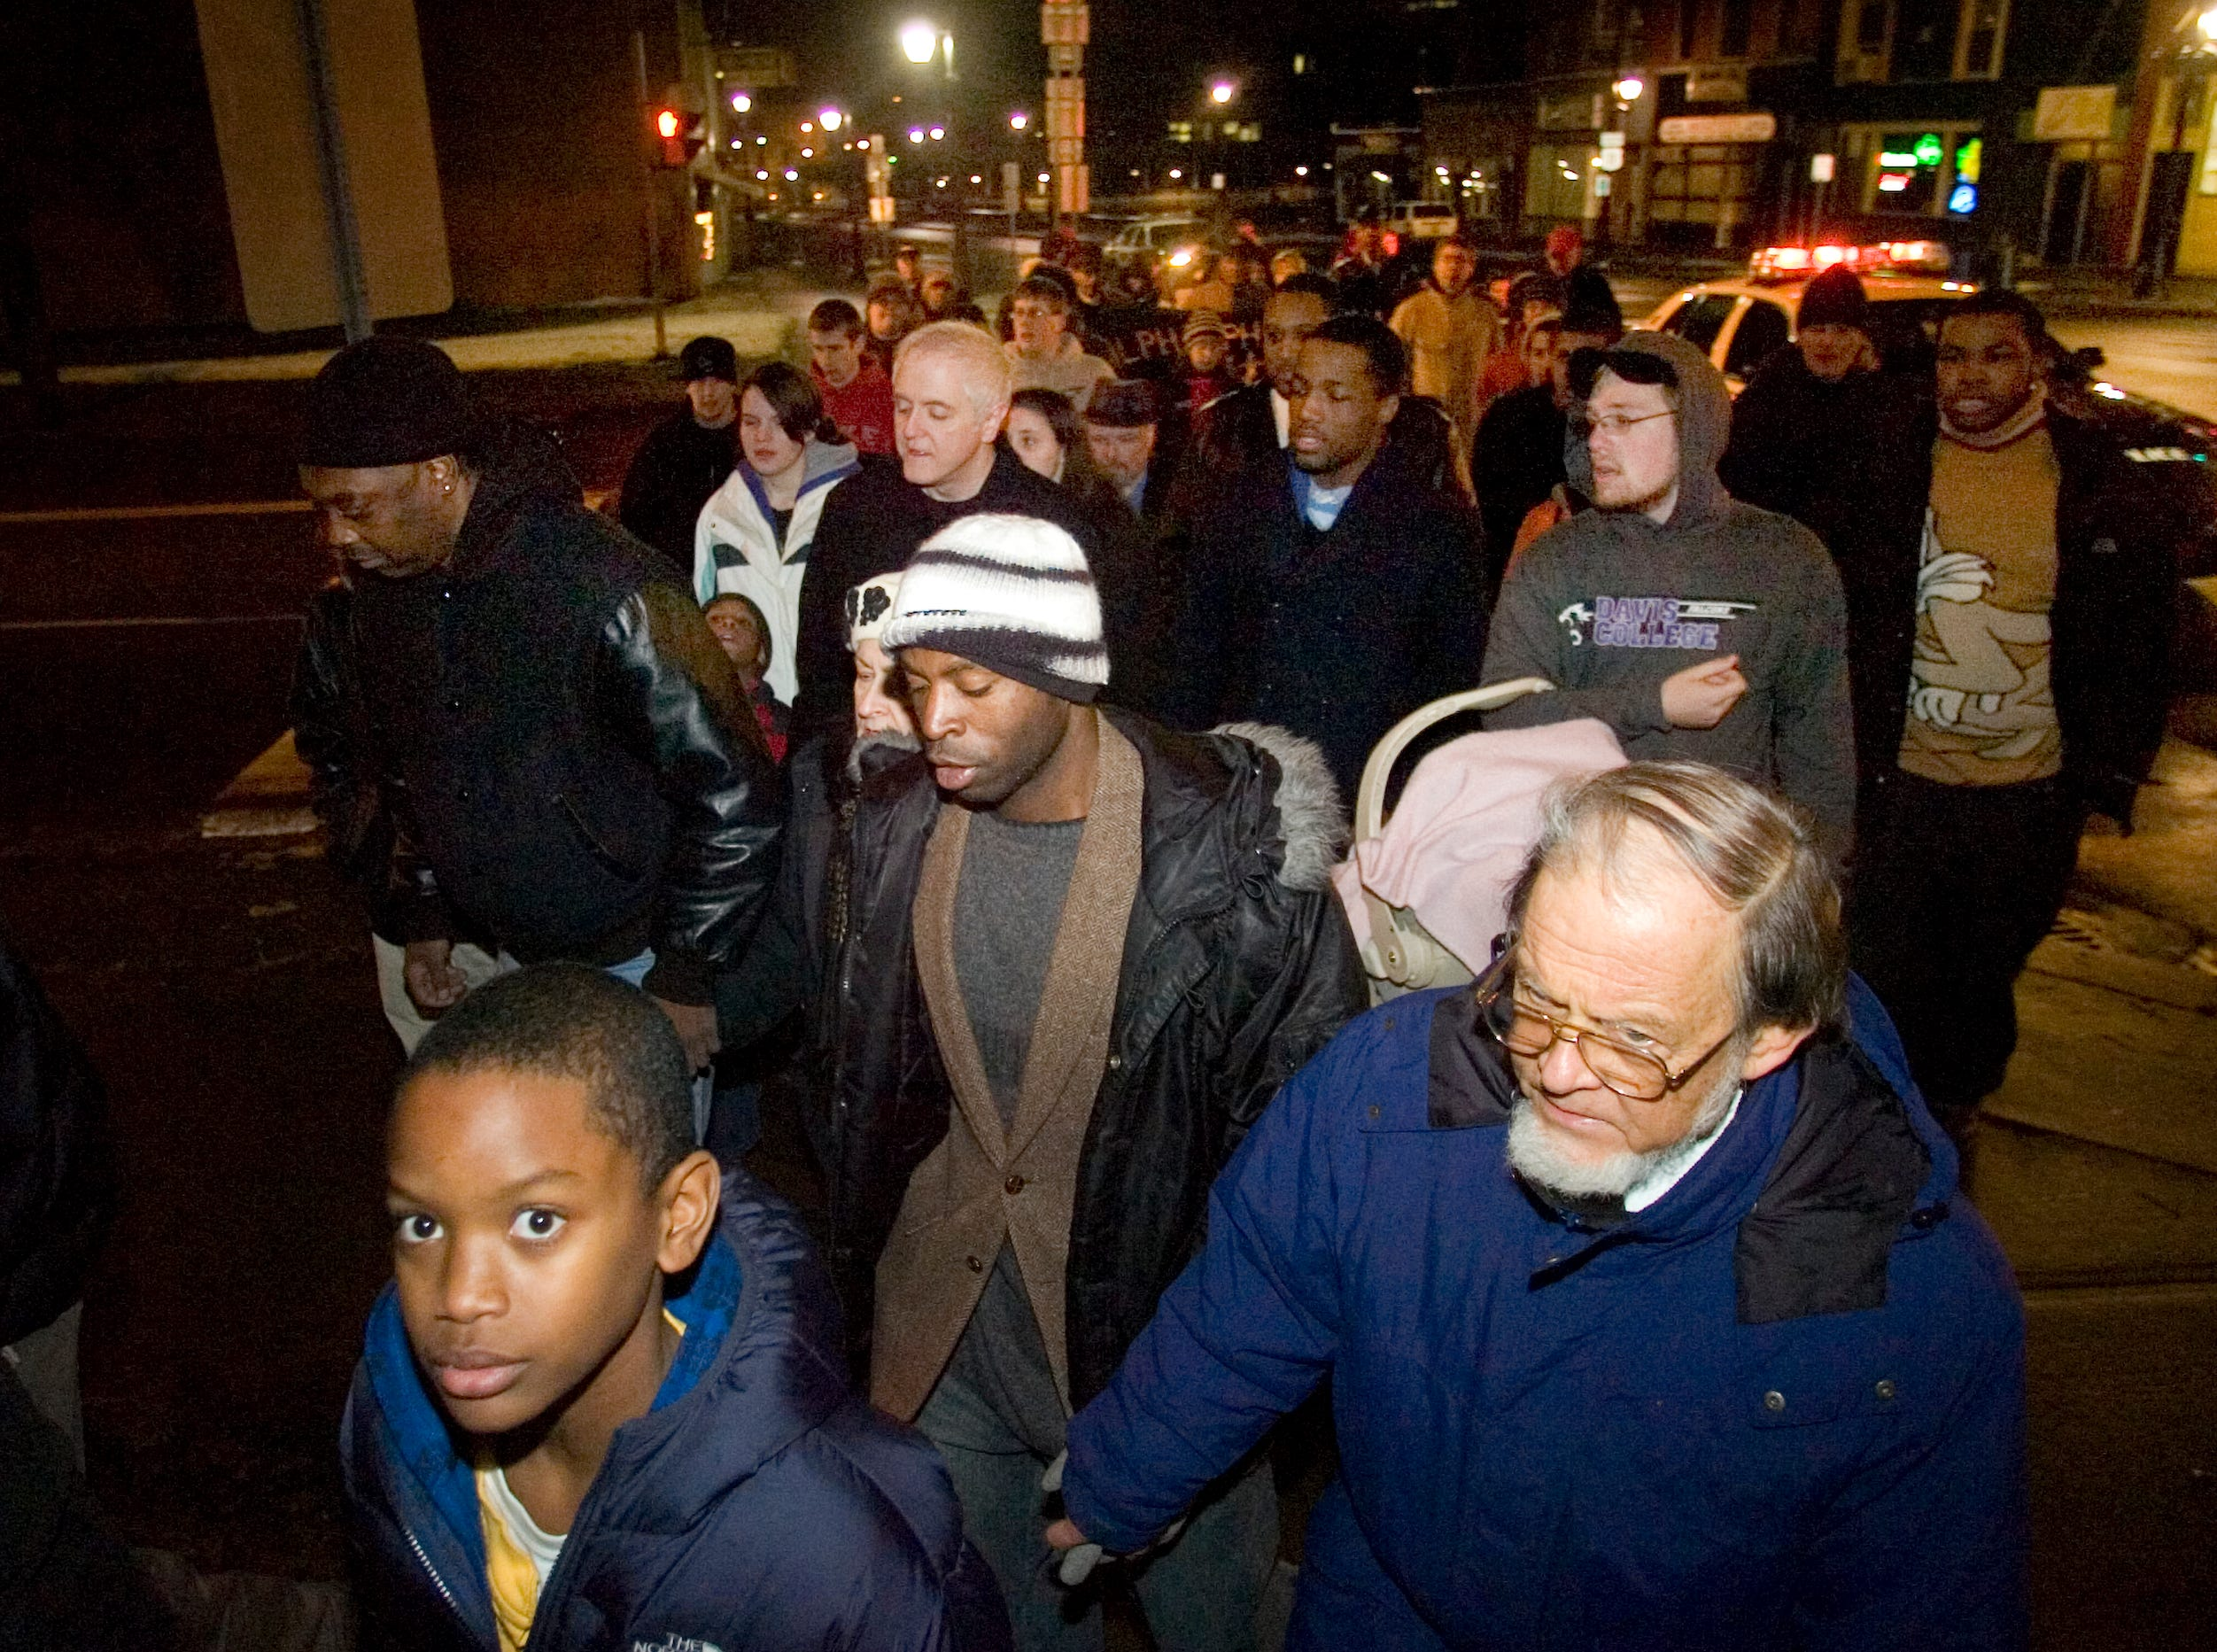 2010: Community members and officials march in downtown Binghamton to honor Martin Luther King Jr. on Monday. The event began at Water and Henry streets in Binghamton (Martin Luther King Promenade) and continued to the First Congregational Church at Main and Front streets. The march was followed by a celebration and service at the church.